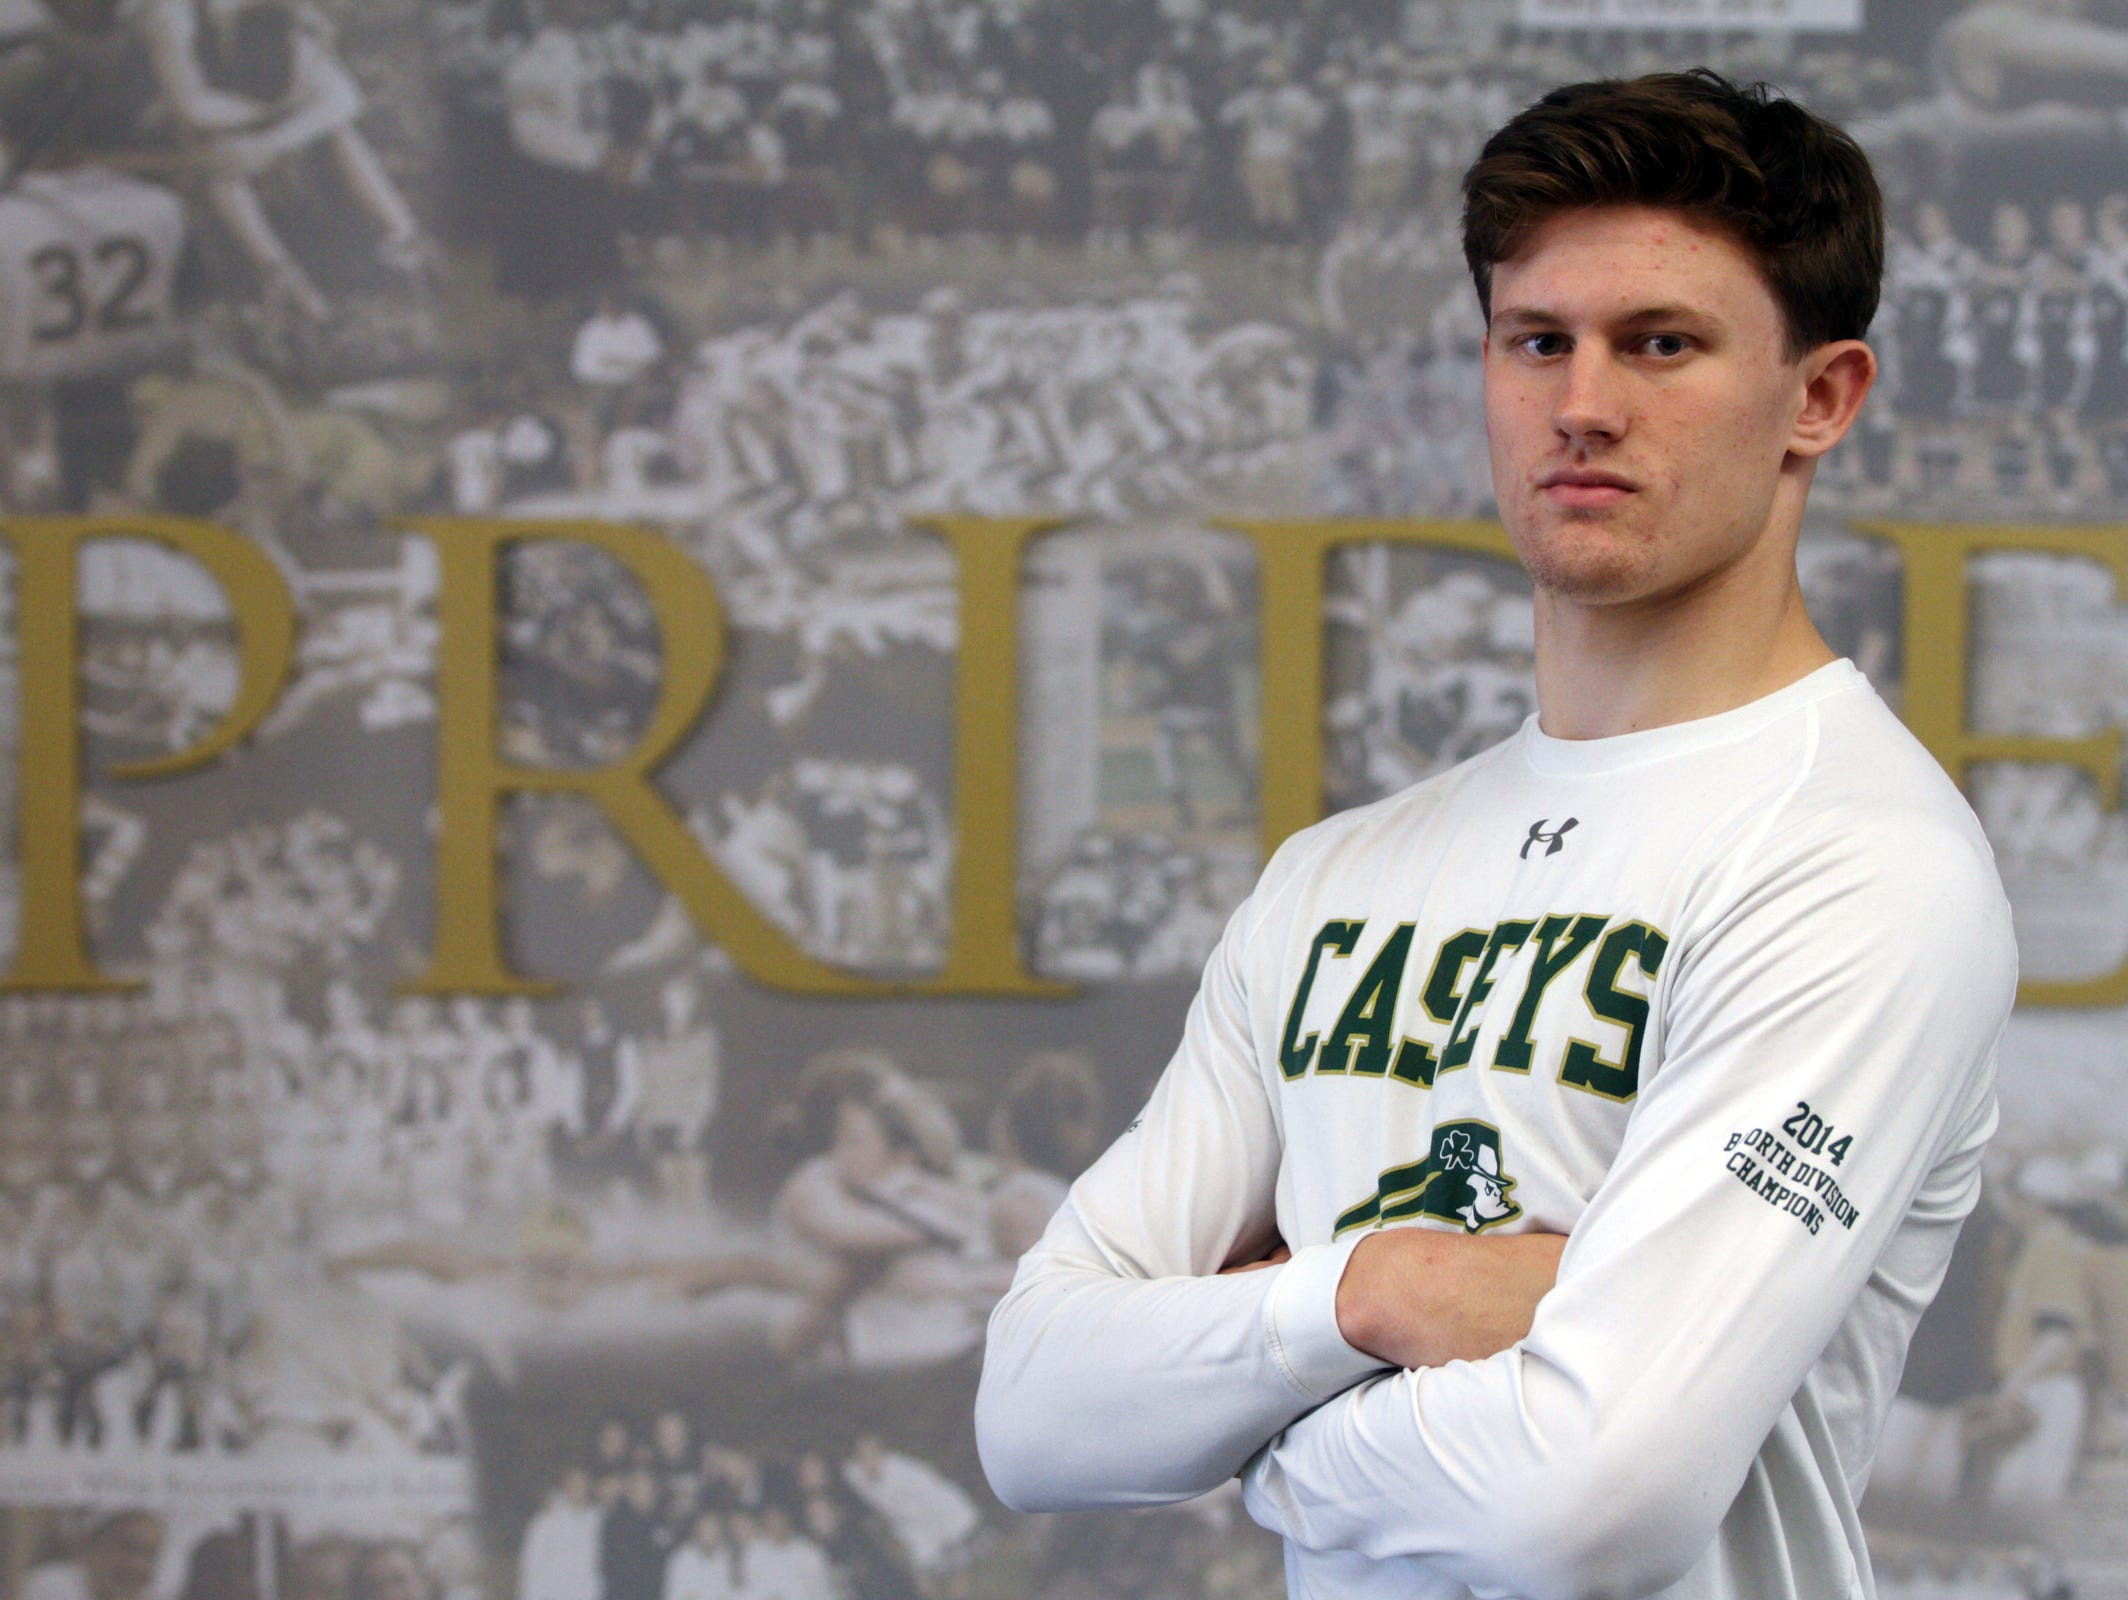 Red Bank Catholic senior quarterback Eddie Hahn will try to lead the Caseys to a win over Jackson Memorial Friday night and avenge a loss from last year..